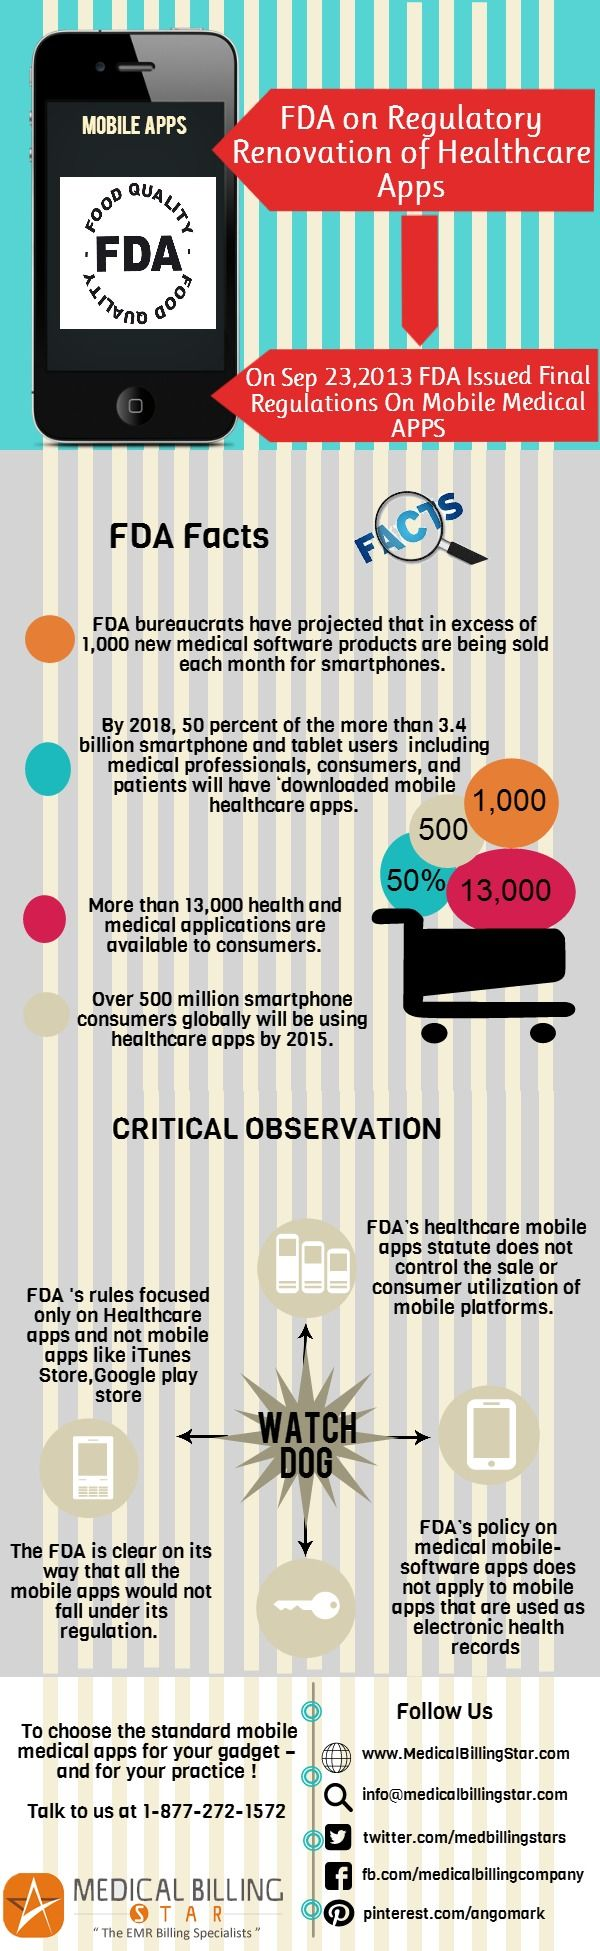 #FDA has issued its final regulations and facts on Mobile Medical Apps #mhealth